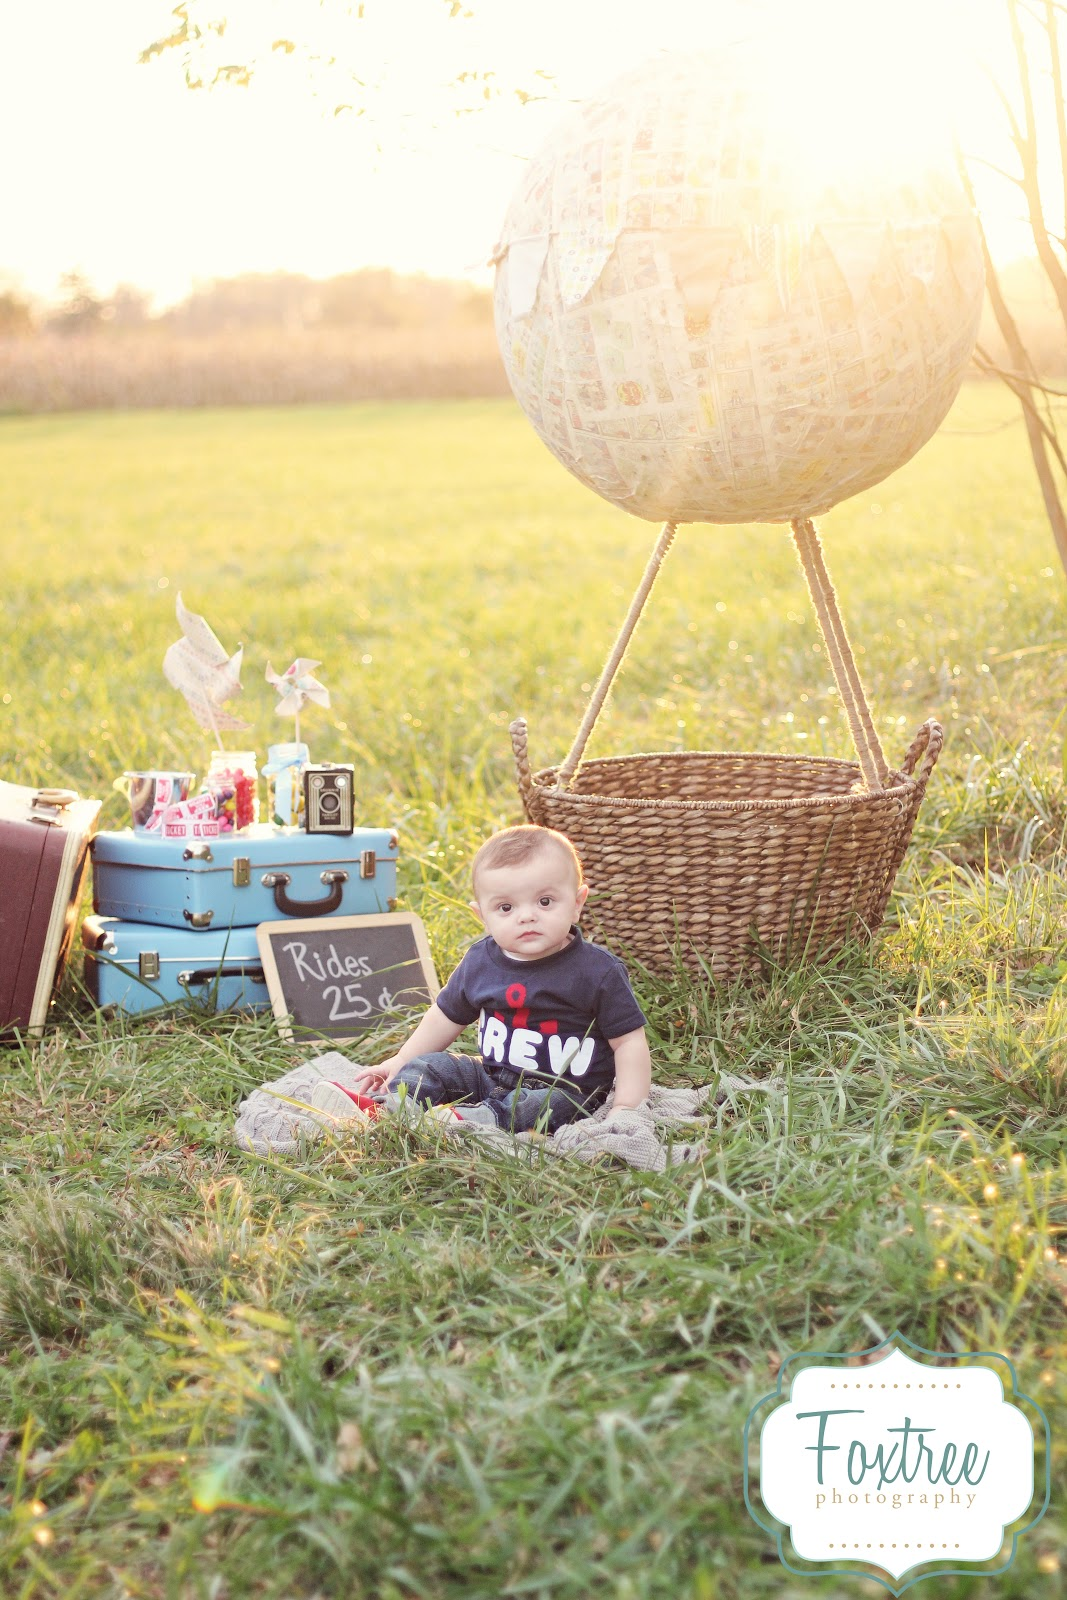 Foxtree Photography: Propology: DIY Hot Air Balloon On A